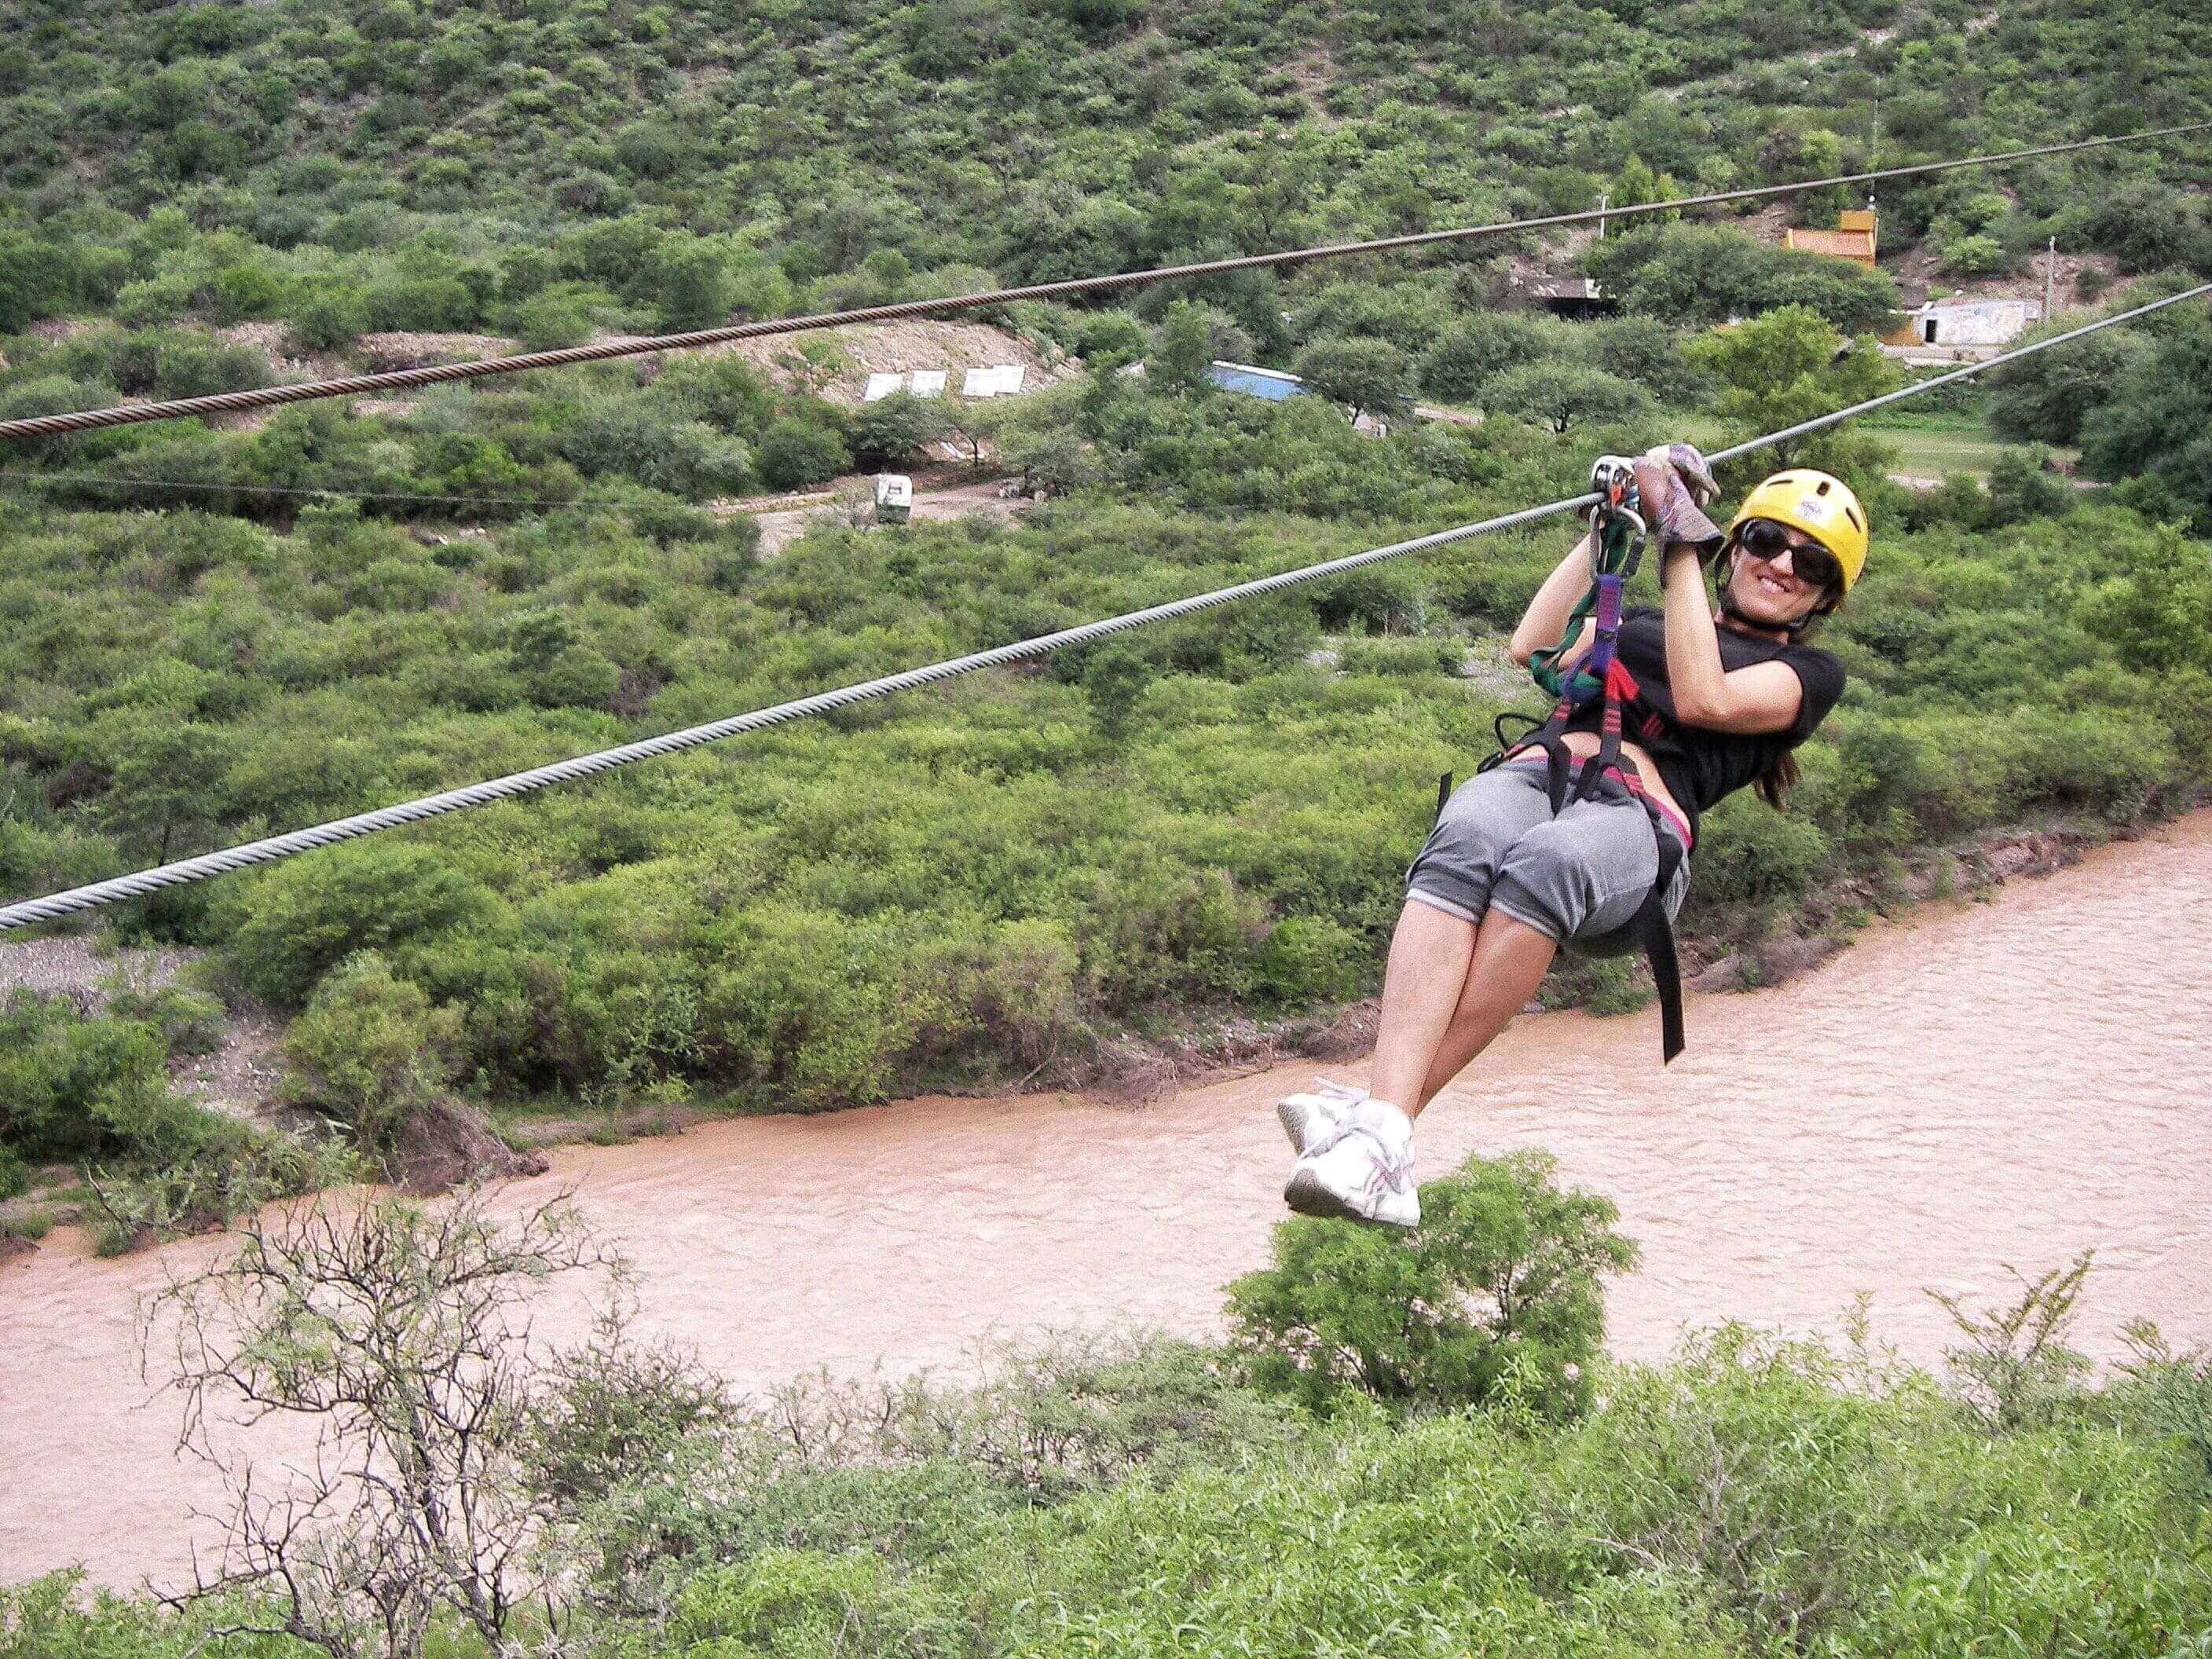 Zip lining over the Juramento River in Salta, Argentina